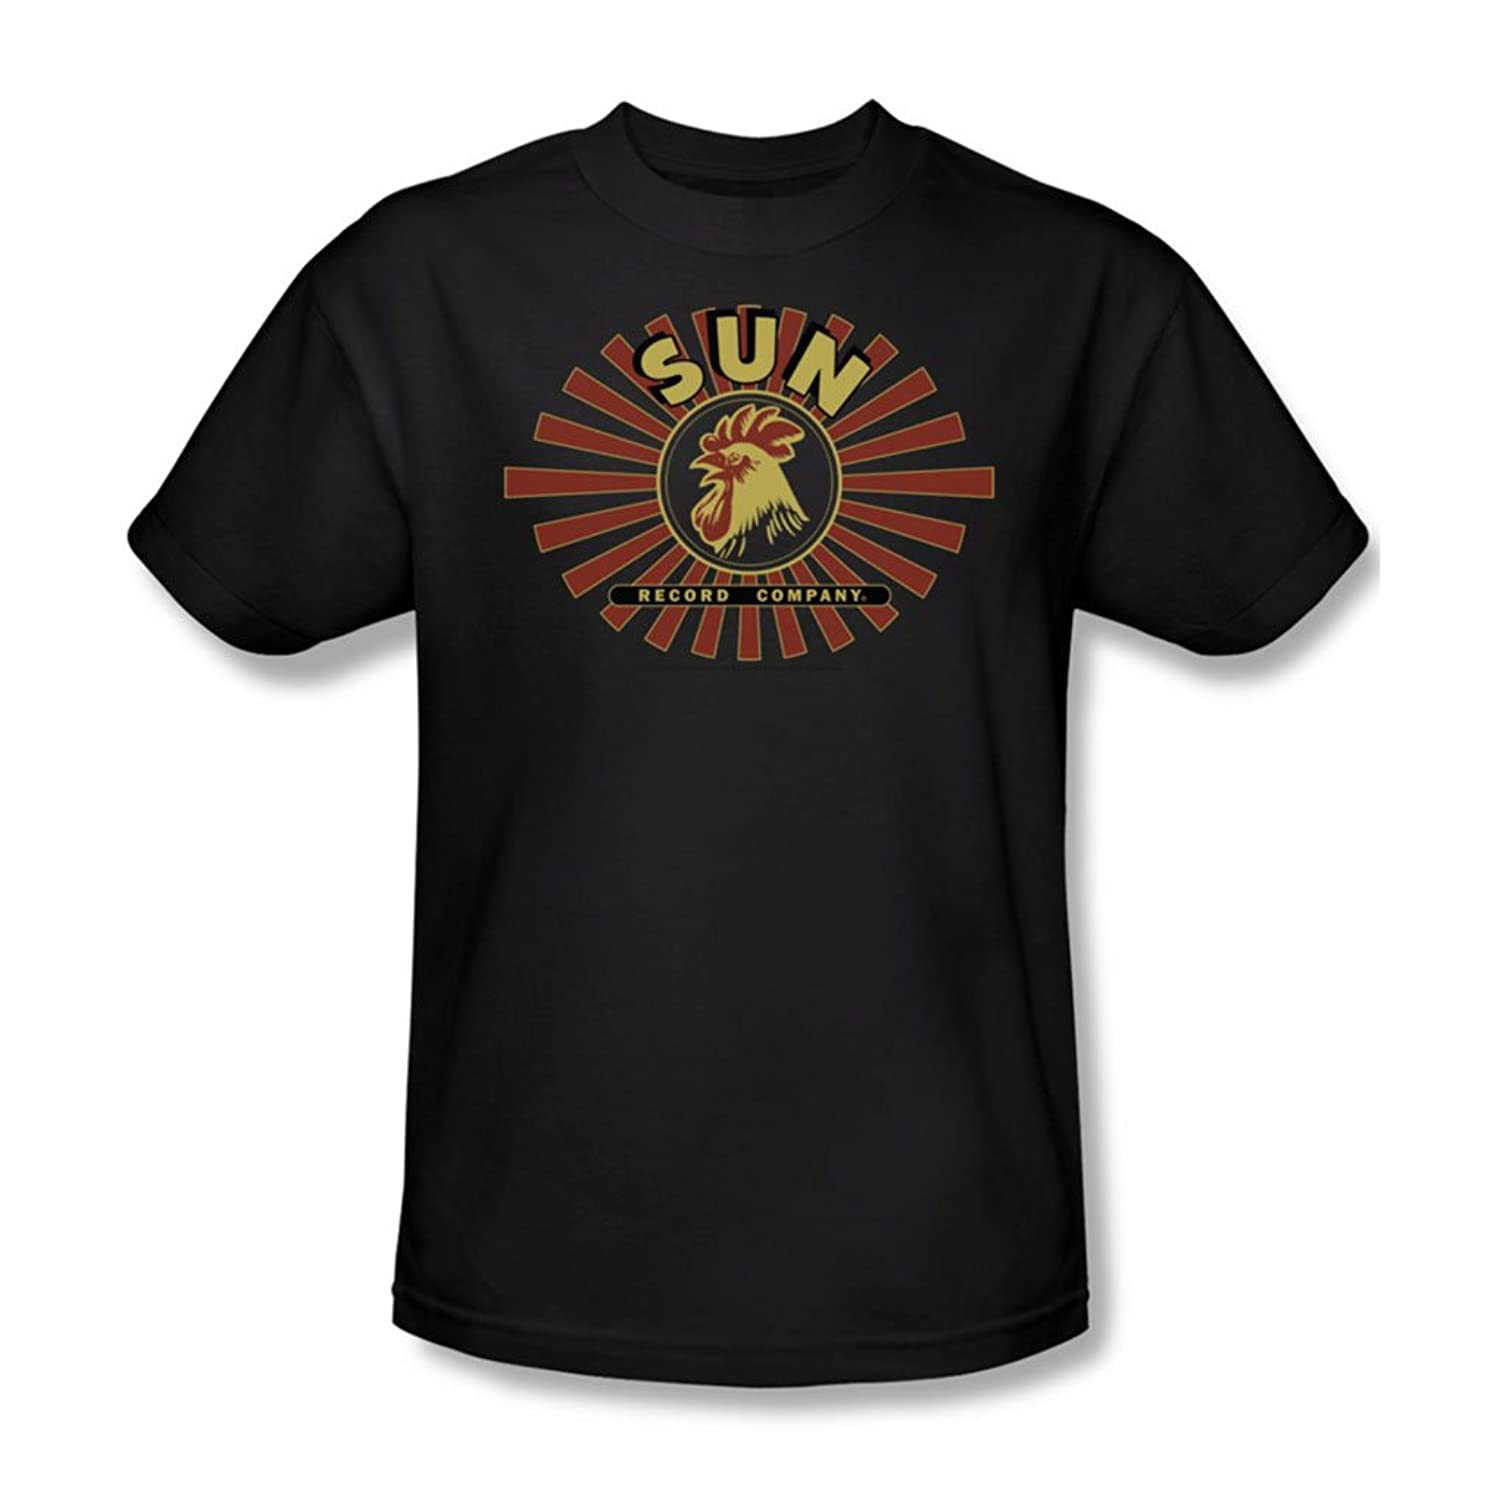 Sun Records - Sun Ray Rooster Adult T-Shirt In Black